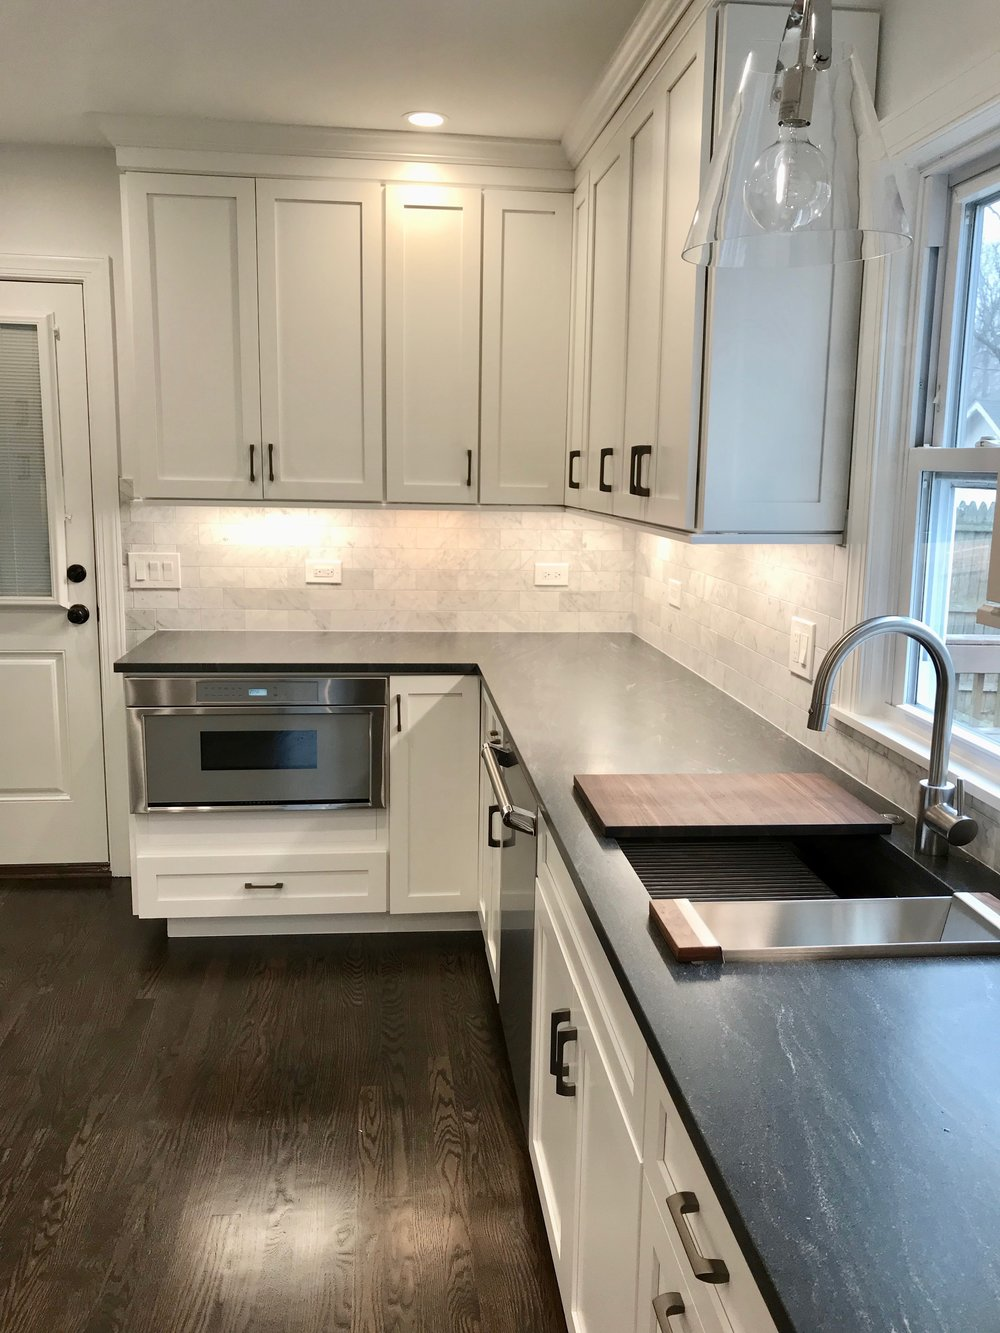 The new kitchen features Thermador appliances , a multi-function sink, and honed granite countertops.